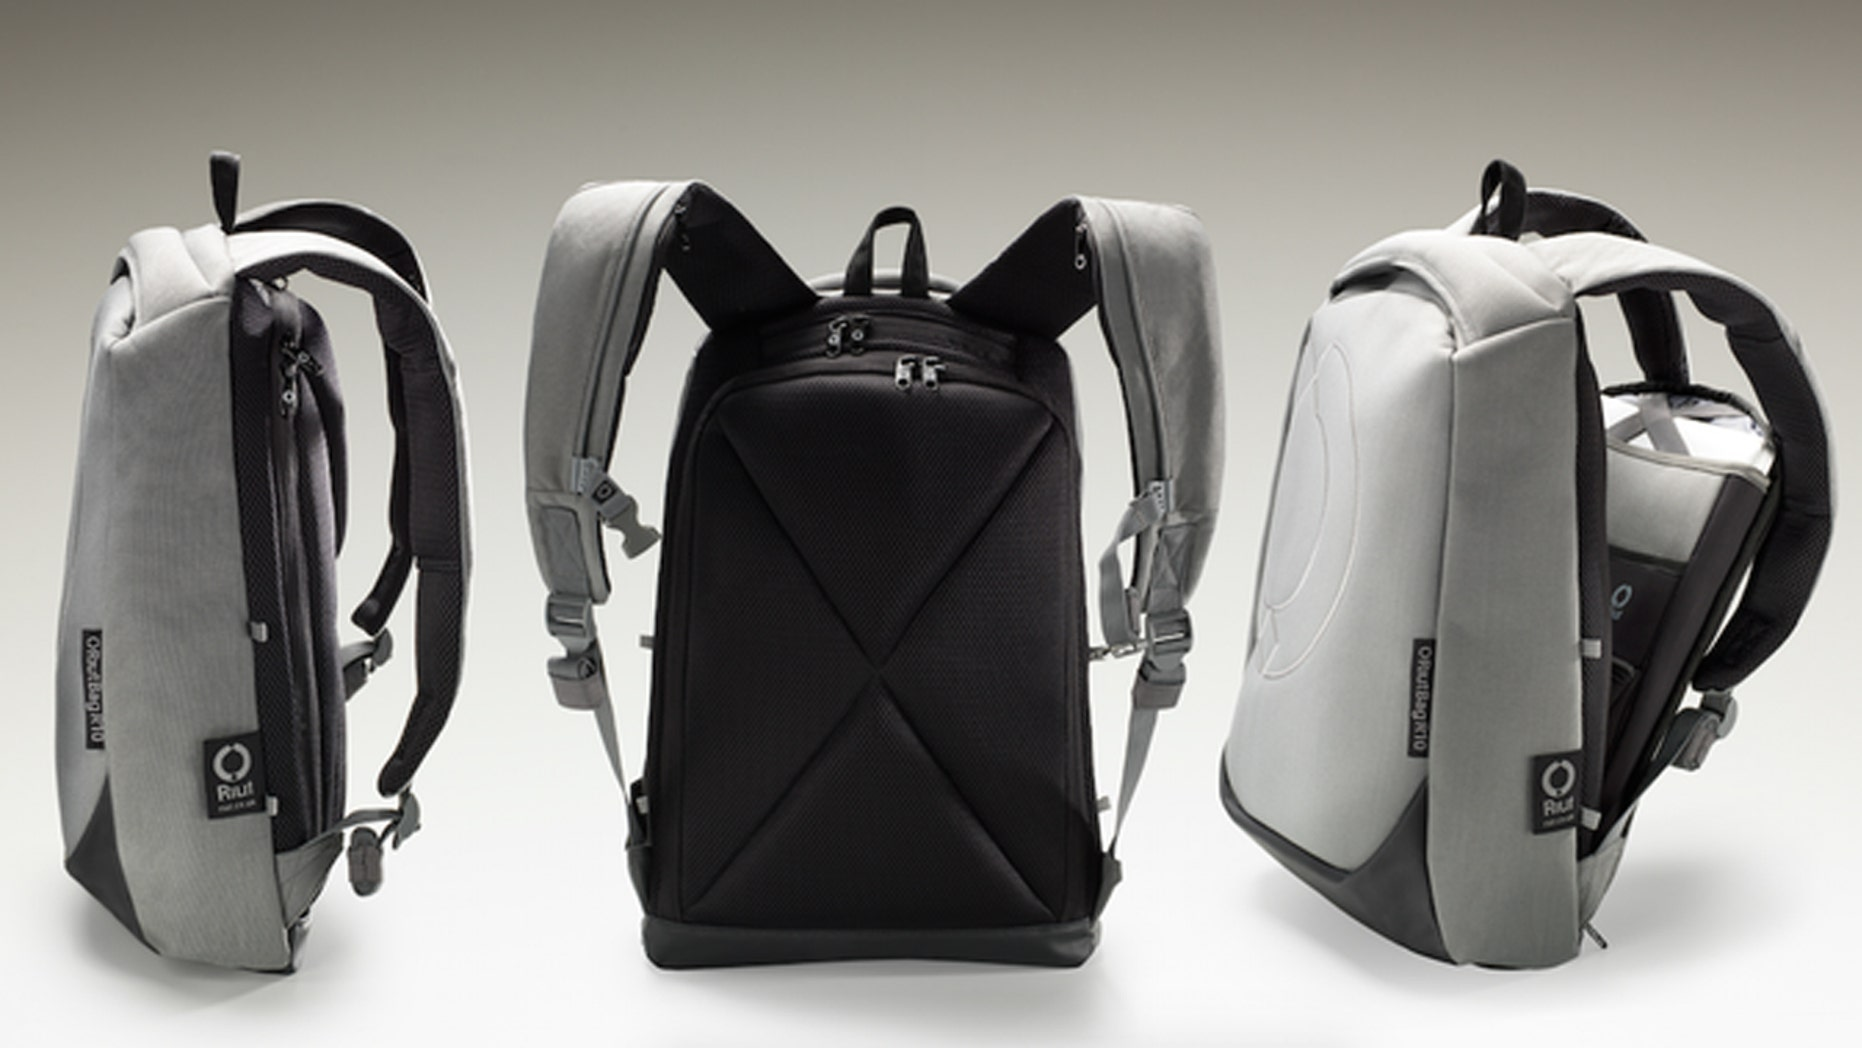 The Bag S Design Features Zippers On Interior